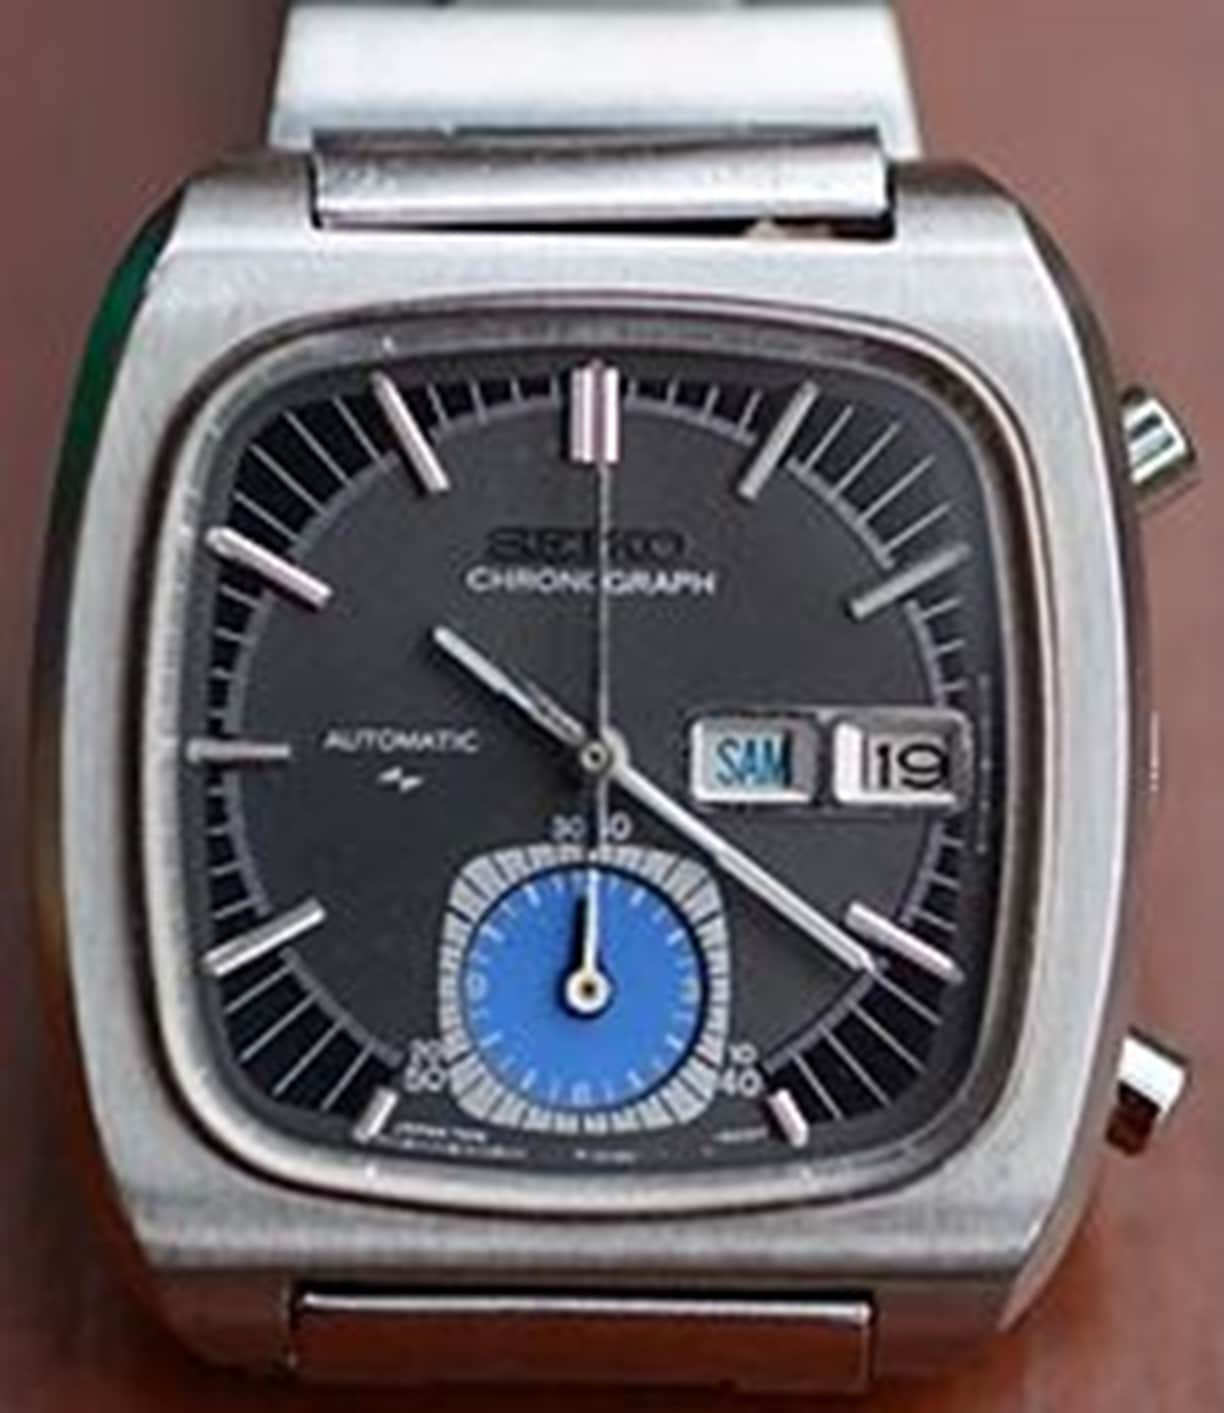 rotate watches blog post dart board image